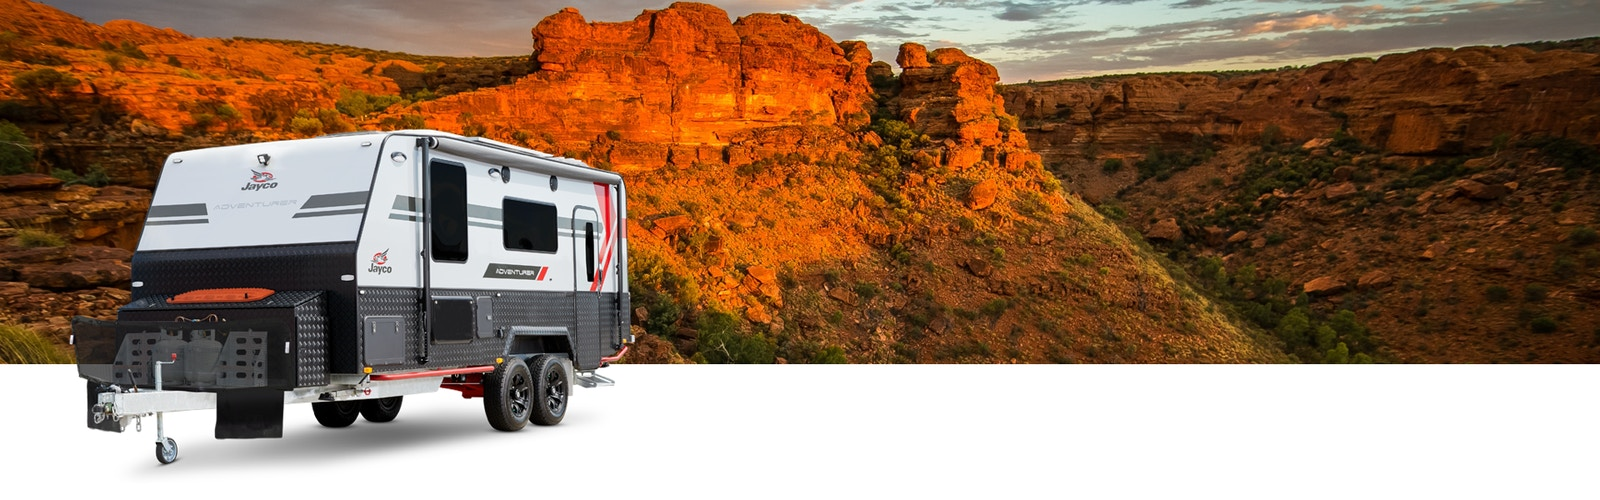 2019 Jayco Adventurer on rural Australia background